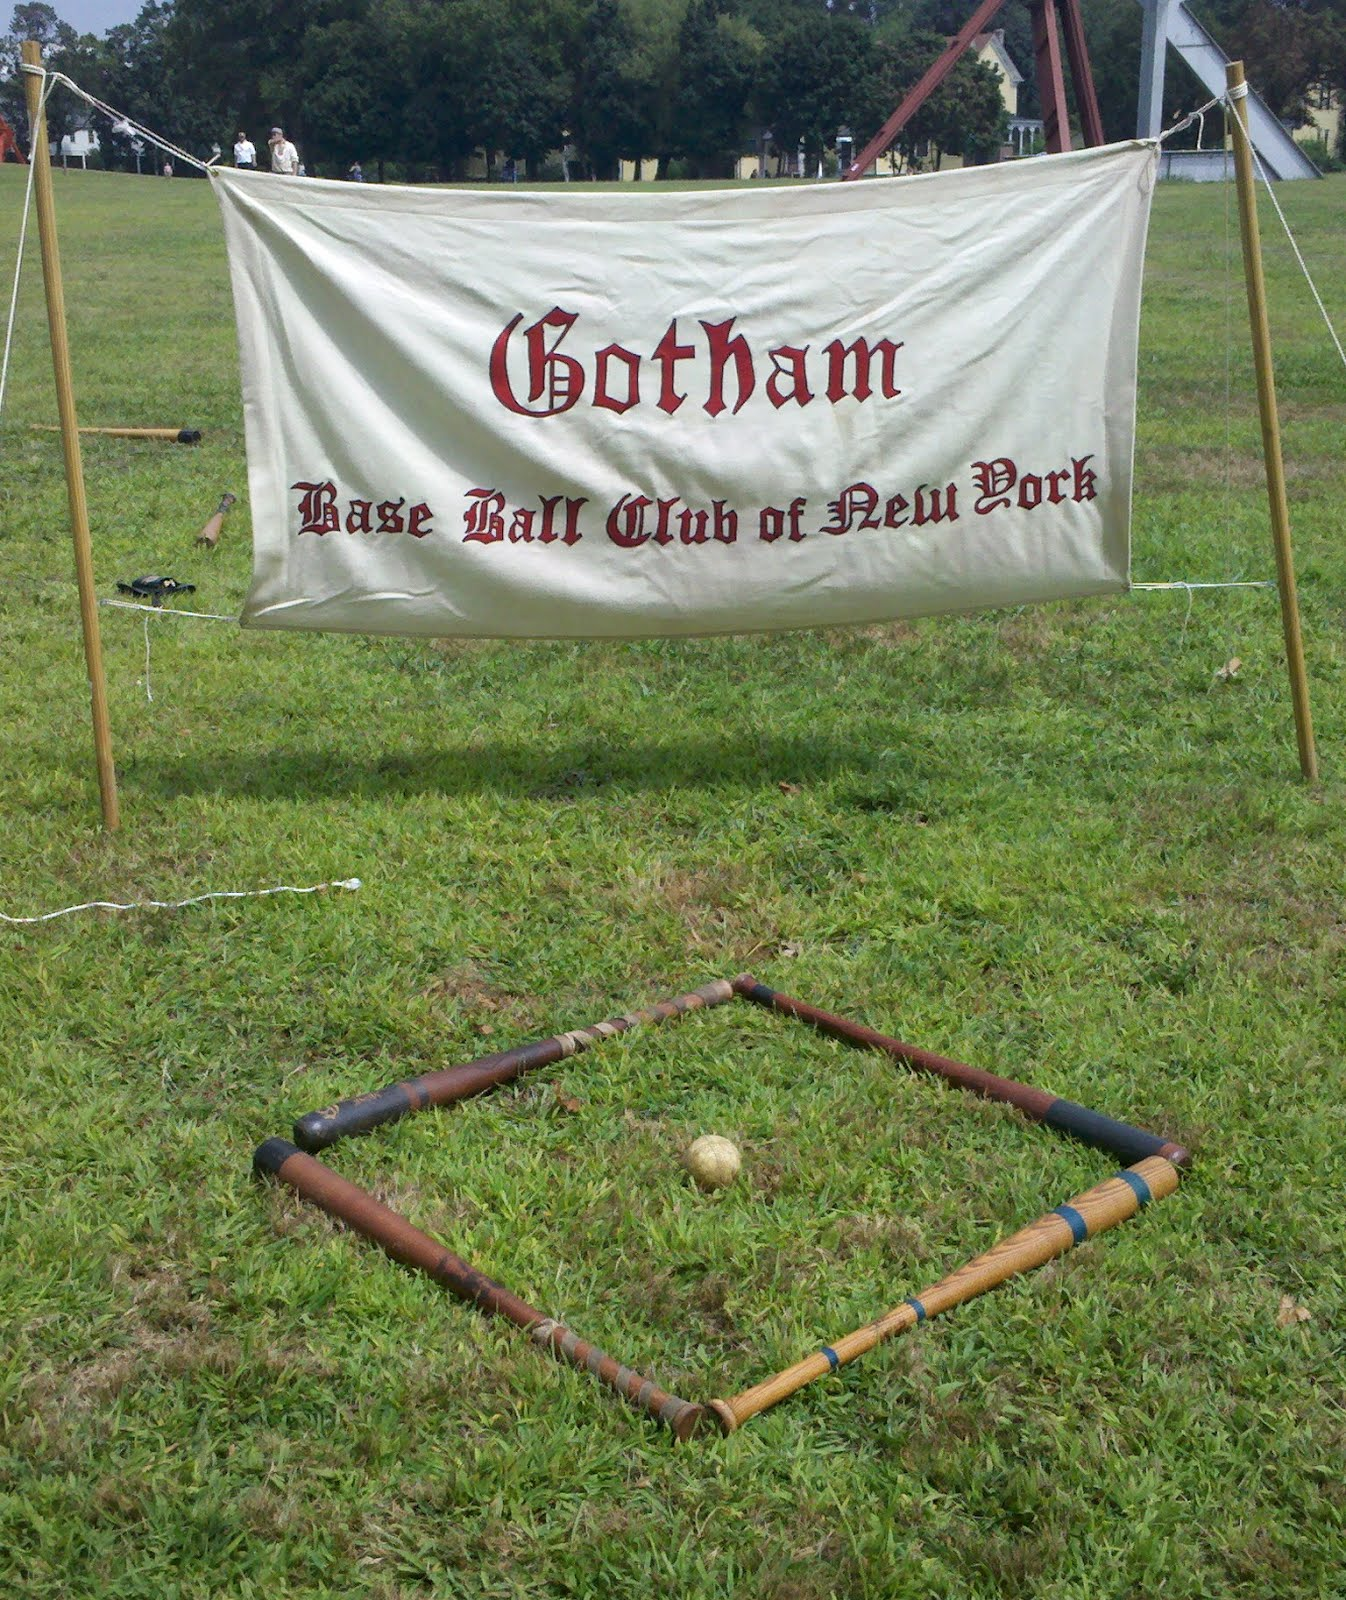 Gotham Base Ball Club of New York (Vintage)